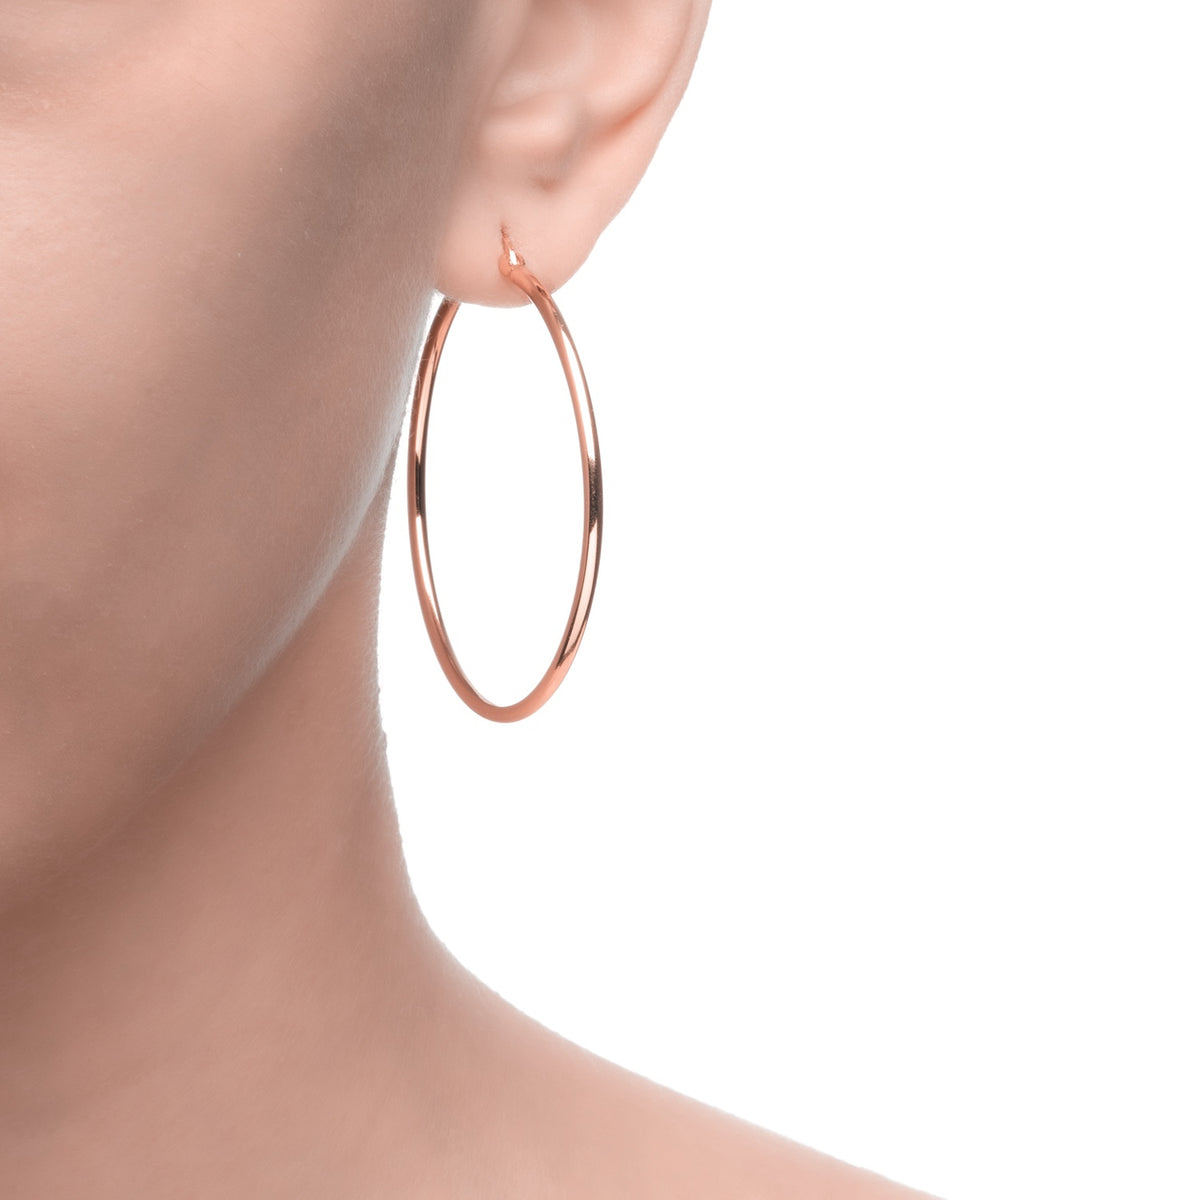 Magna | Teen Hoop Earrings | Rose Gold Plated 925 Silver